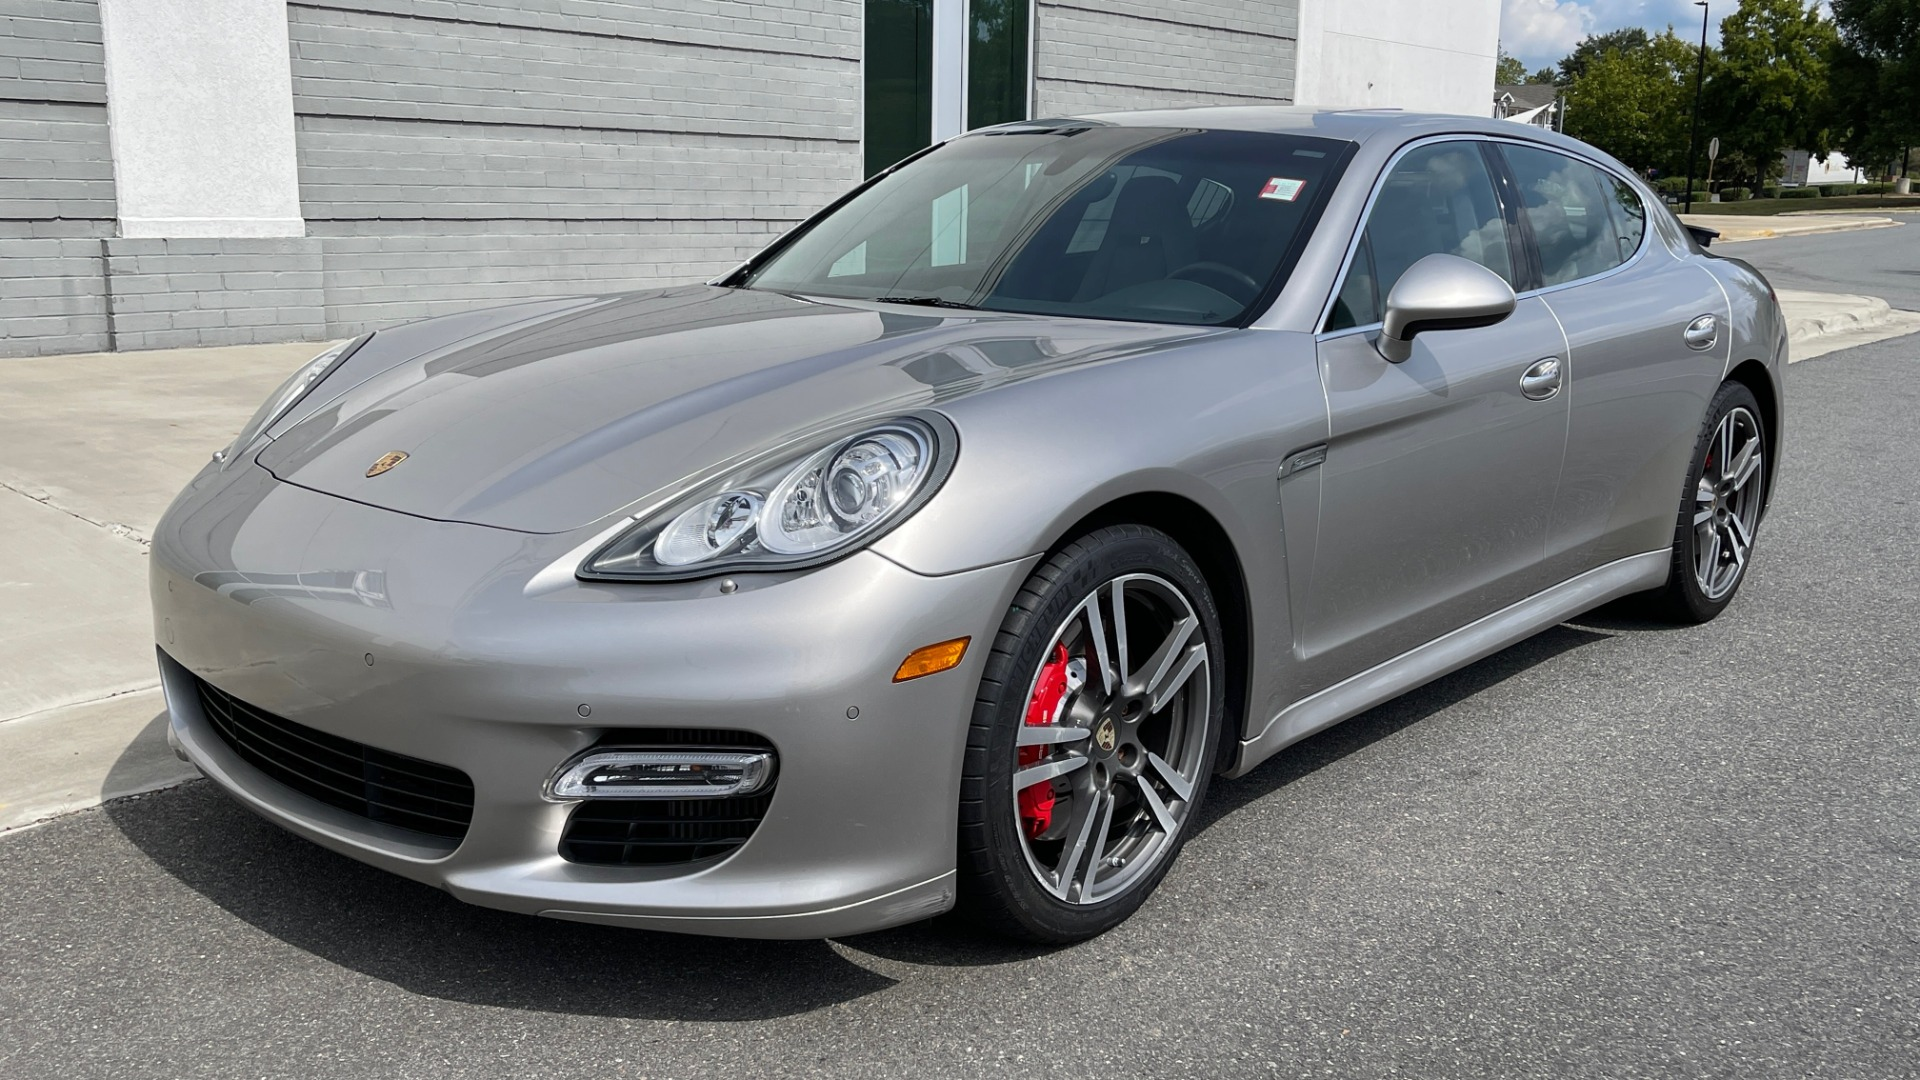 Used 2010 Porsche PANAMERA 4DR HB TURBO / SPORT CHRONO / BOSE / AUTO CLIMATE CONTROL for sale $42,124 at Formula Imports in Charlotte NC 28227 3